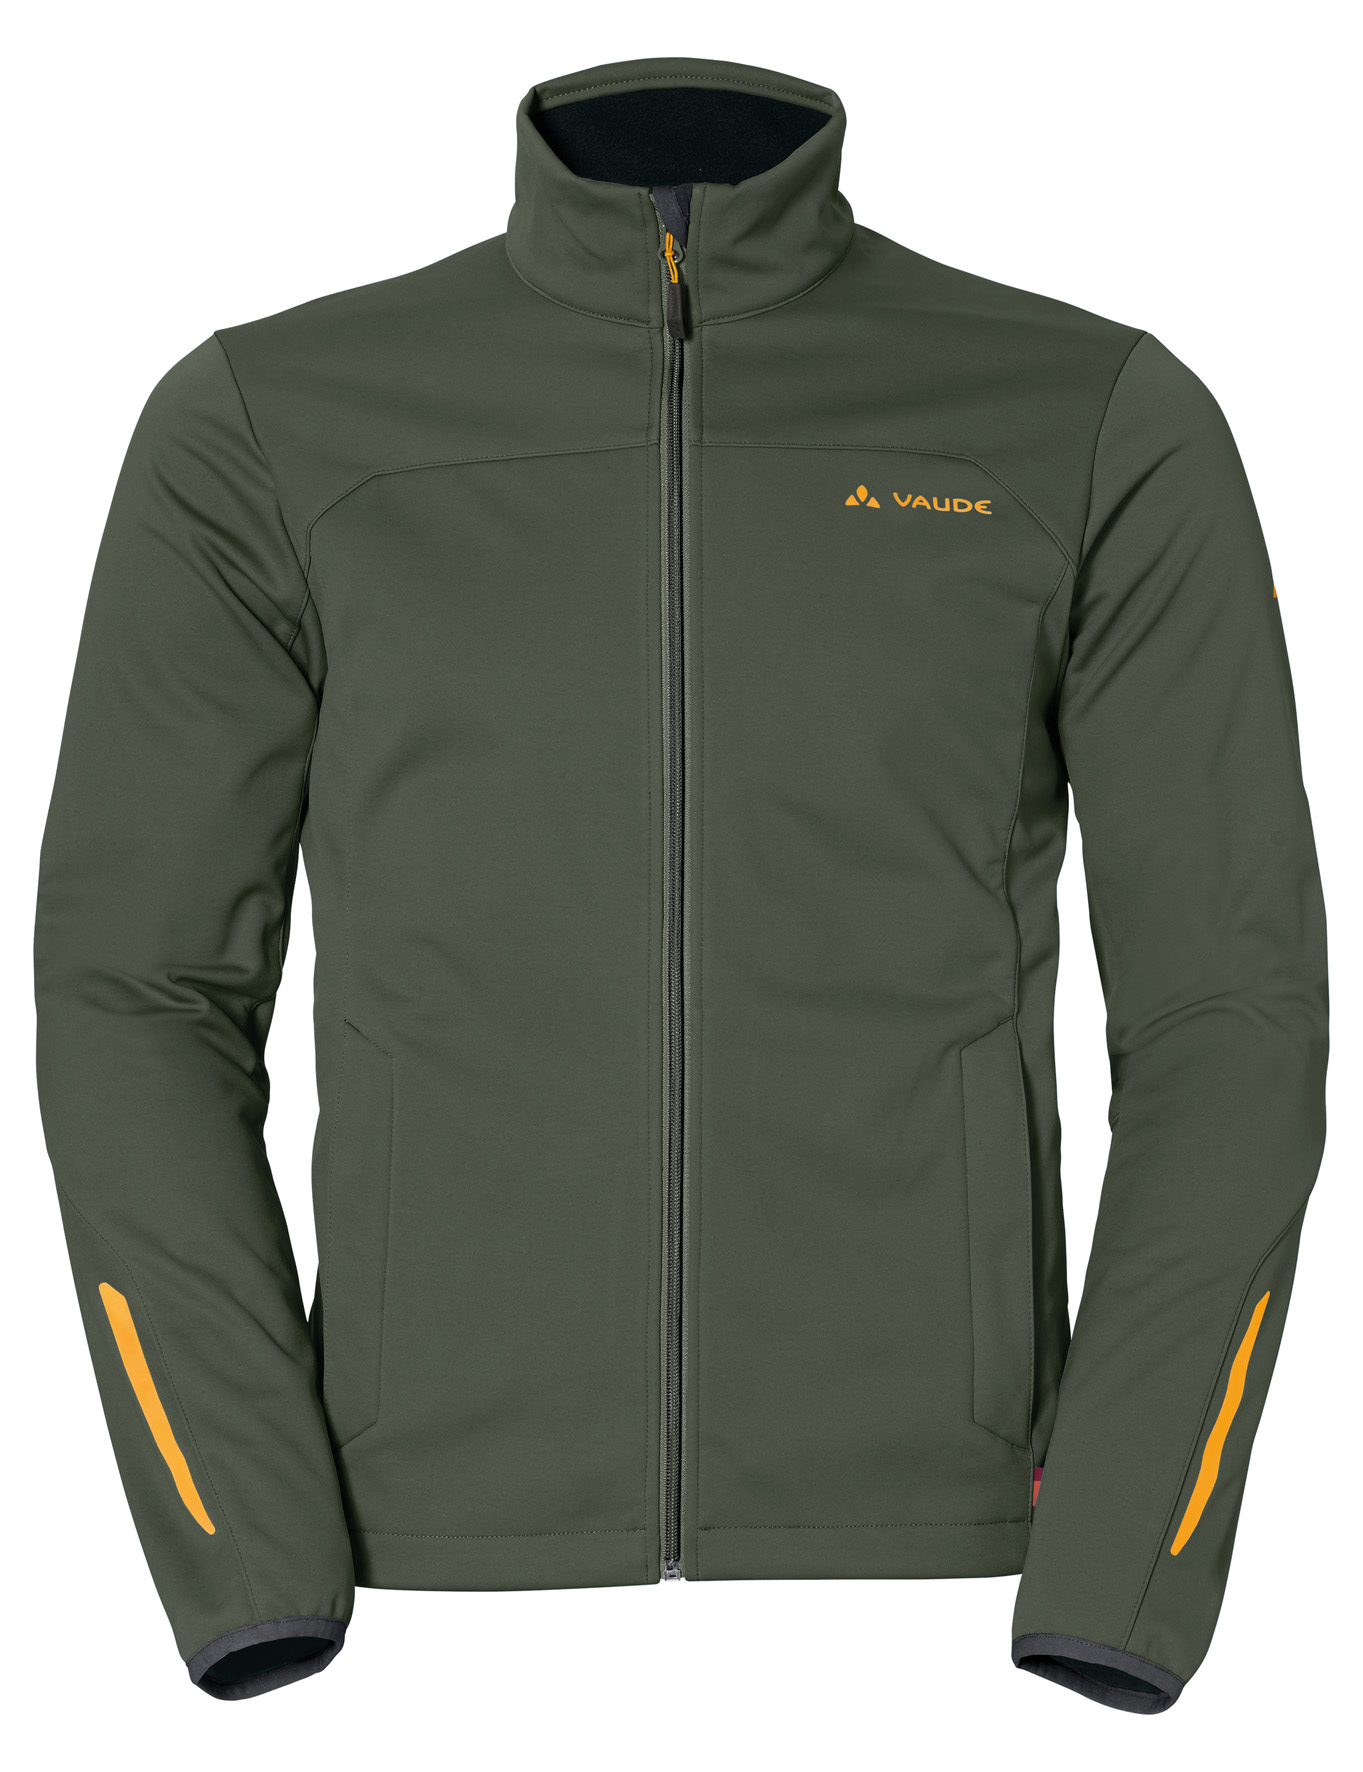 VAUDE Men´s Wintry Jacket III pine Größe S - schneider-sports